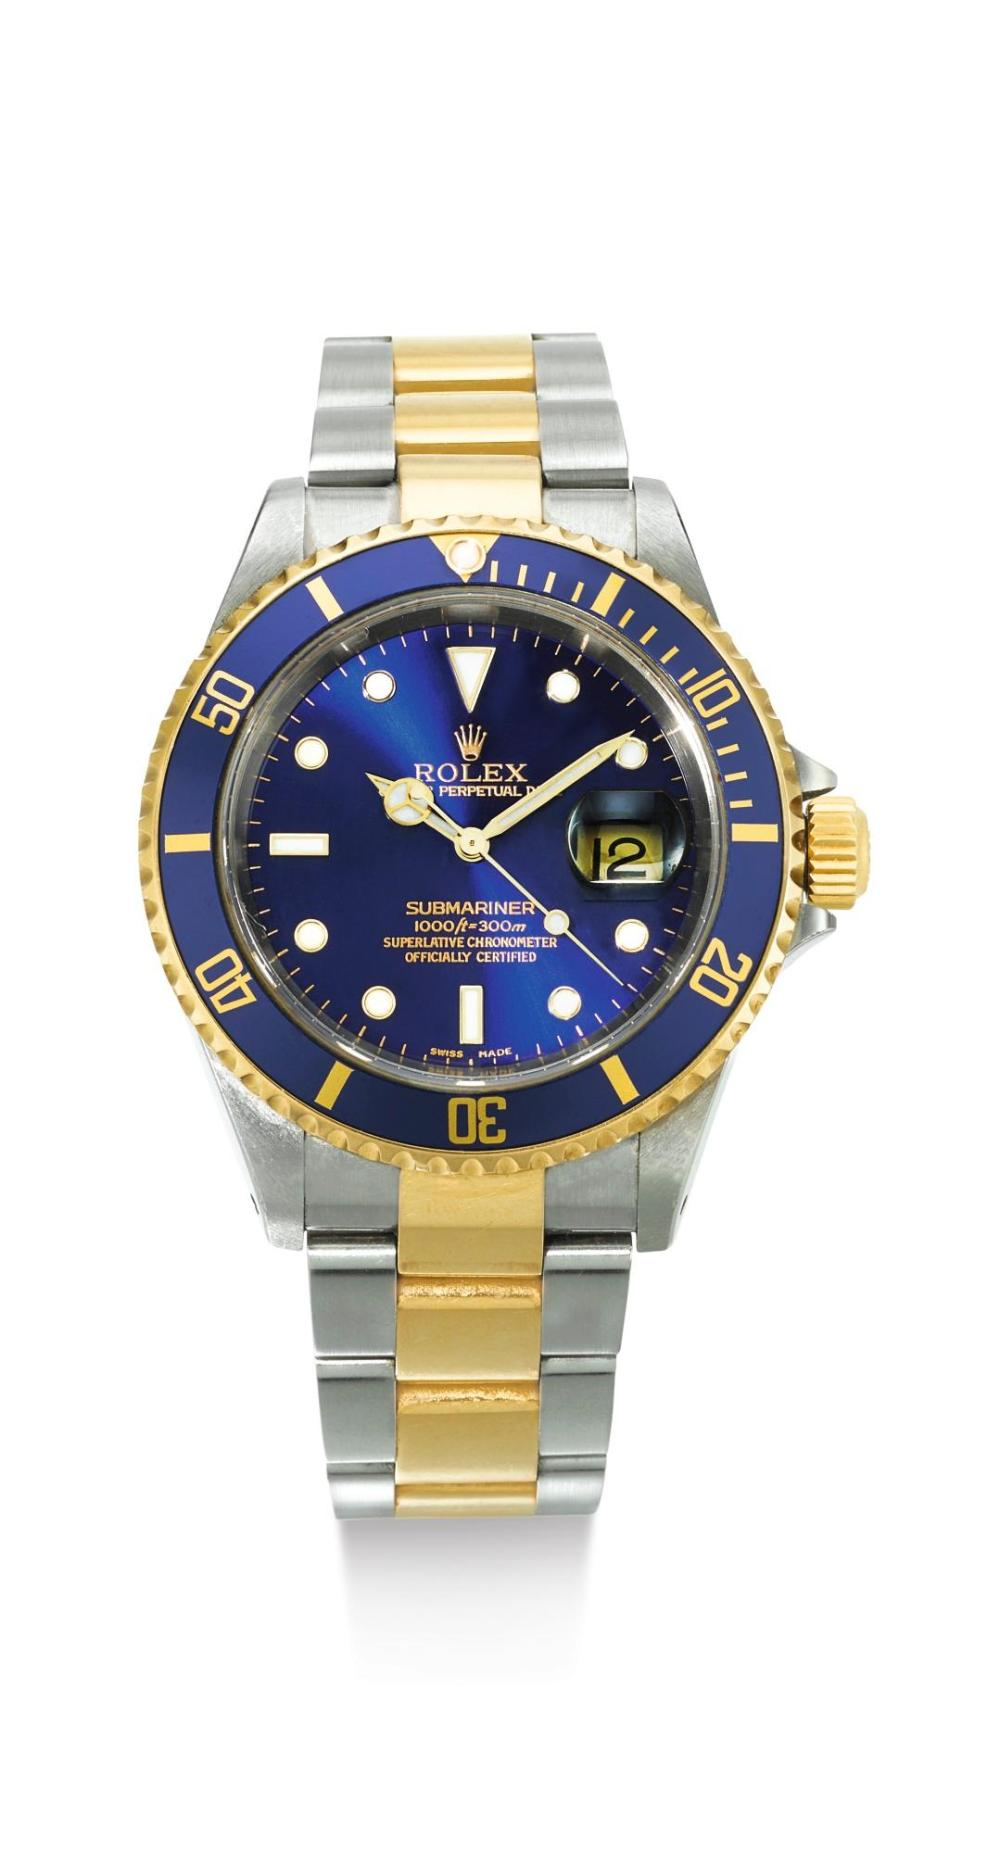 ROLEX | A STAINLESS STEEL AND YELLOW GOLD AUTOMATIC CENTRE SECONDS WRISTWATCH WITH DATE AND BRACELET REF 16613 CASE Y244024 SUBMARINER CIRCA 2002